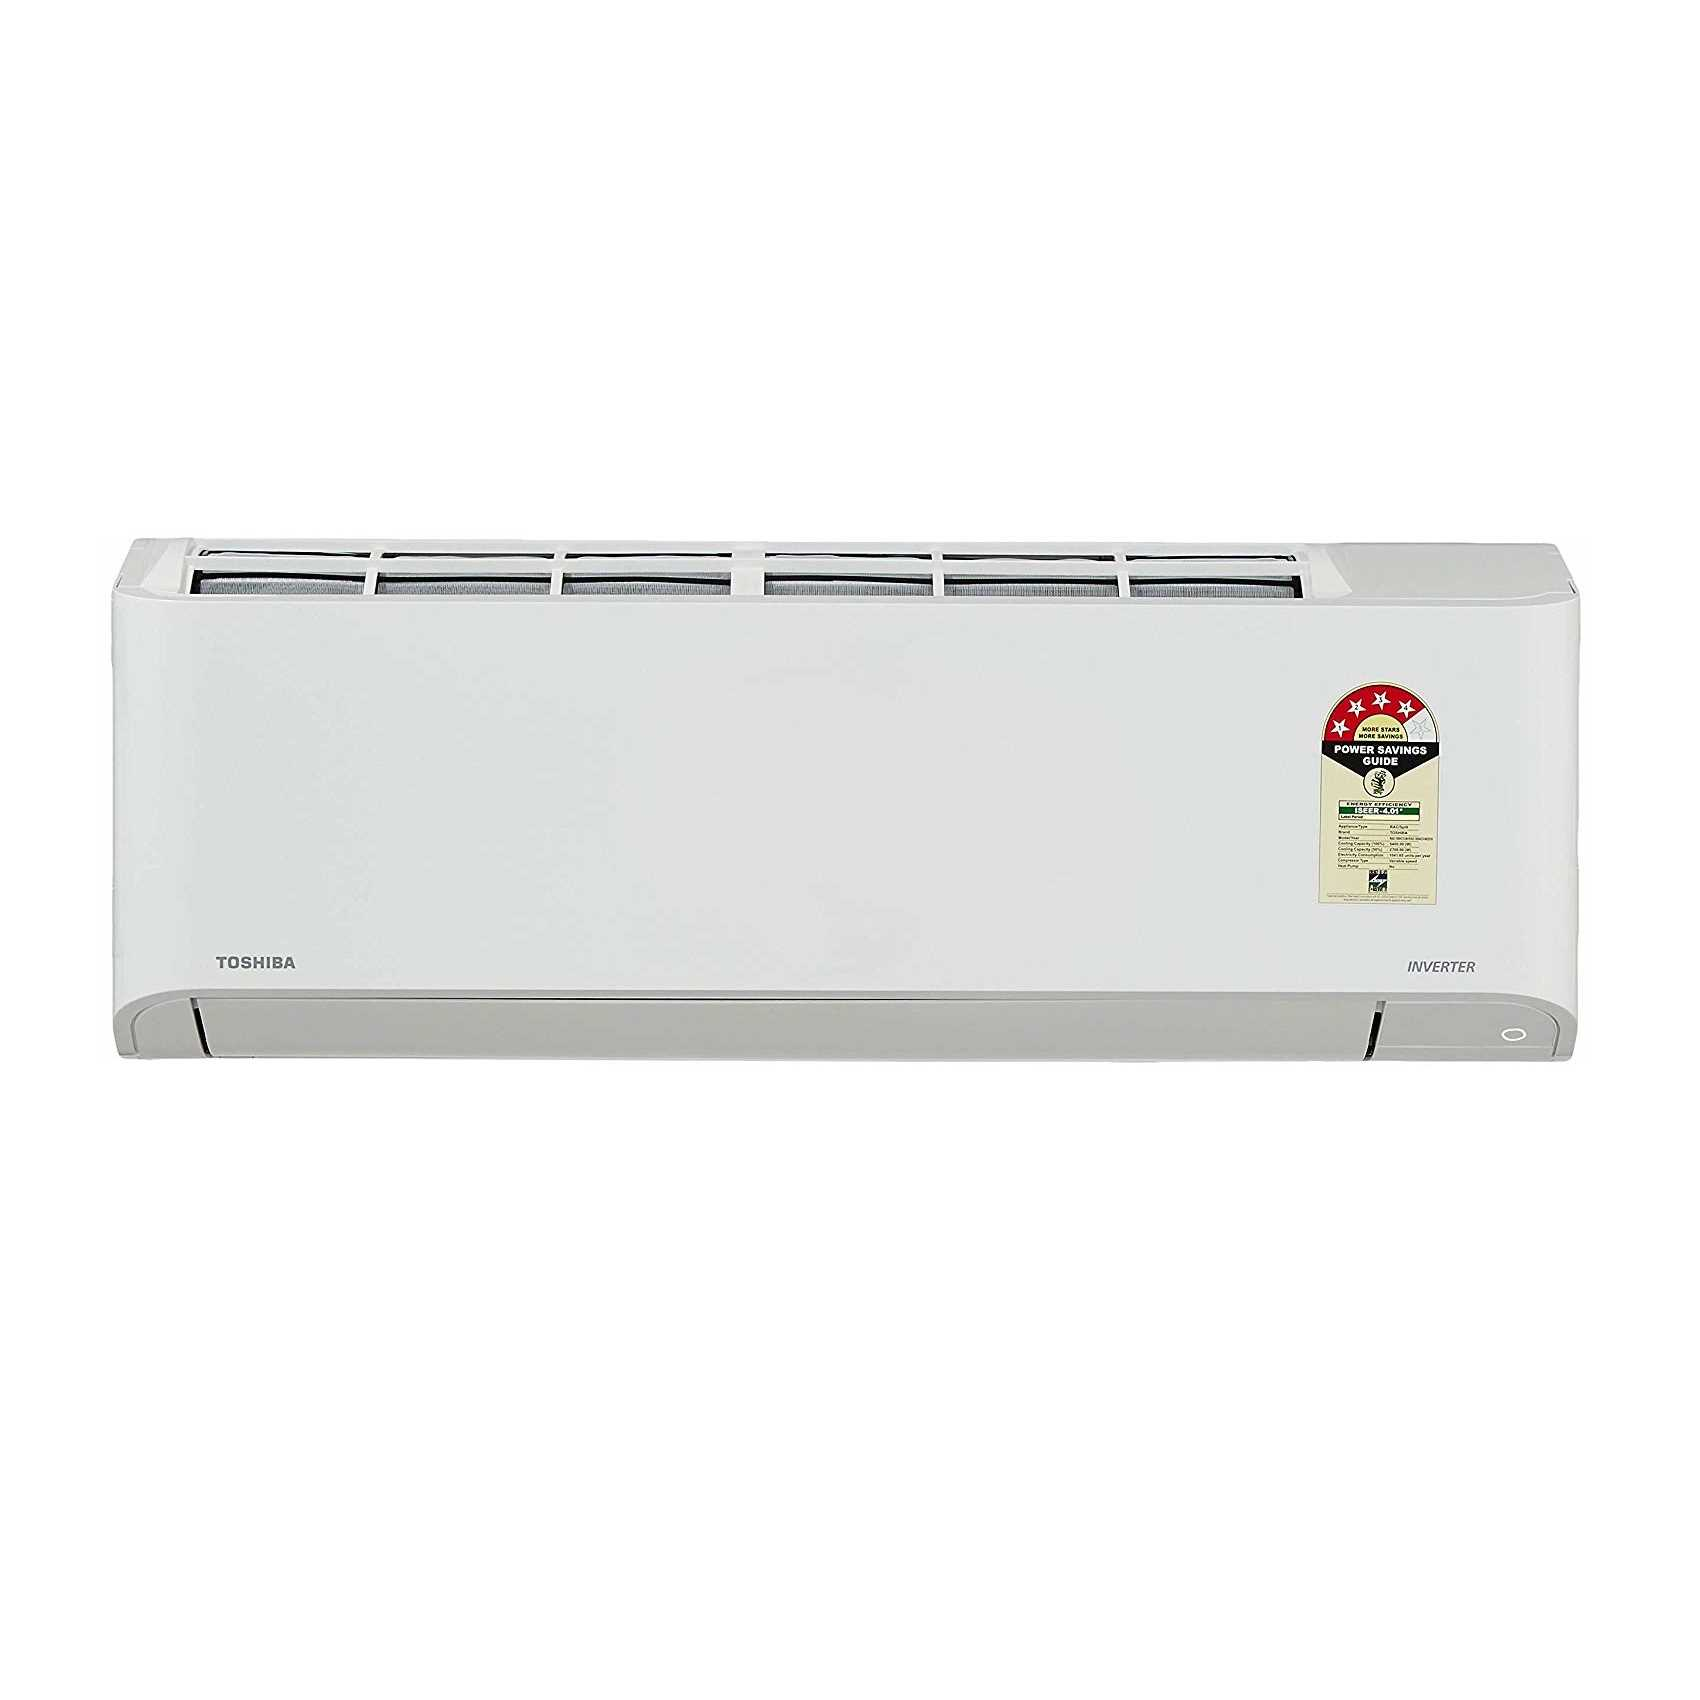 Toshiba RAS 18BKCV IN 1.5 Ton 4 Star Inverter Split AC